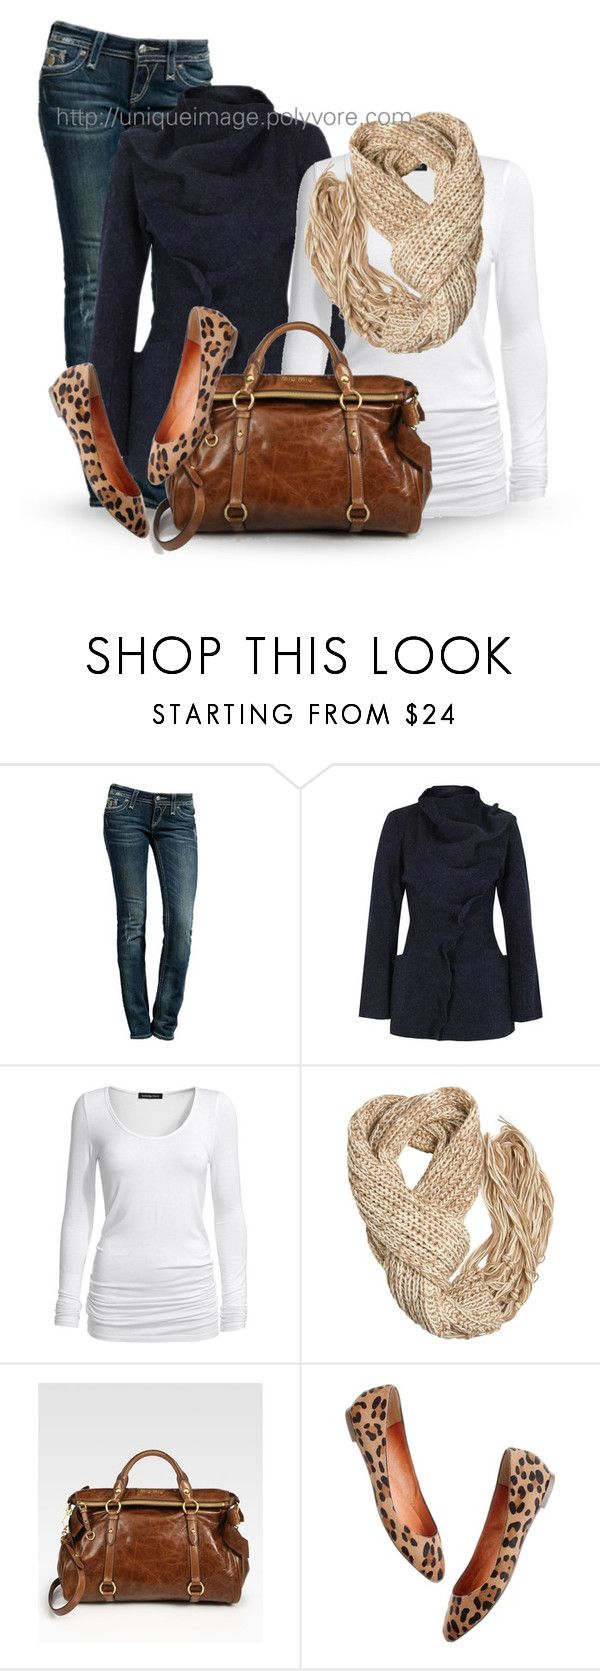 """""""Winter Outfit #8"""" by uniqueimage ❤ liked on Polyvore featuring Rock Revival, Gróa, Isabella Oliver, A Wear, Miu Miu and Madewell"""